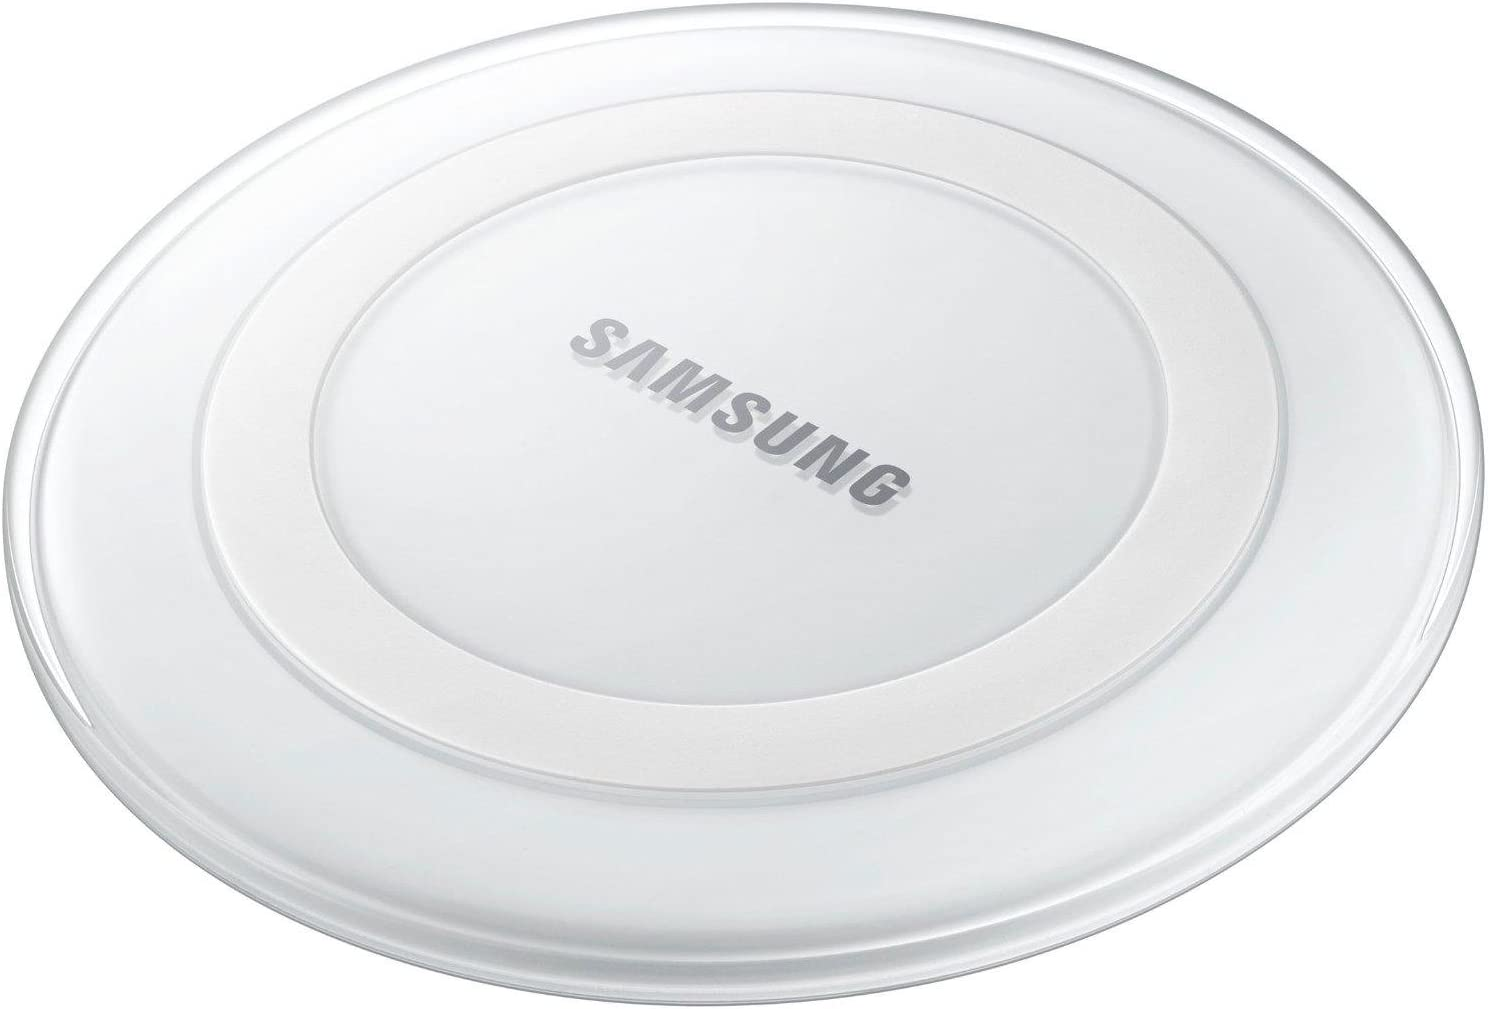 Samsung Wireless Charging Pad White Mobile Phone Wall Chargers